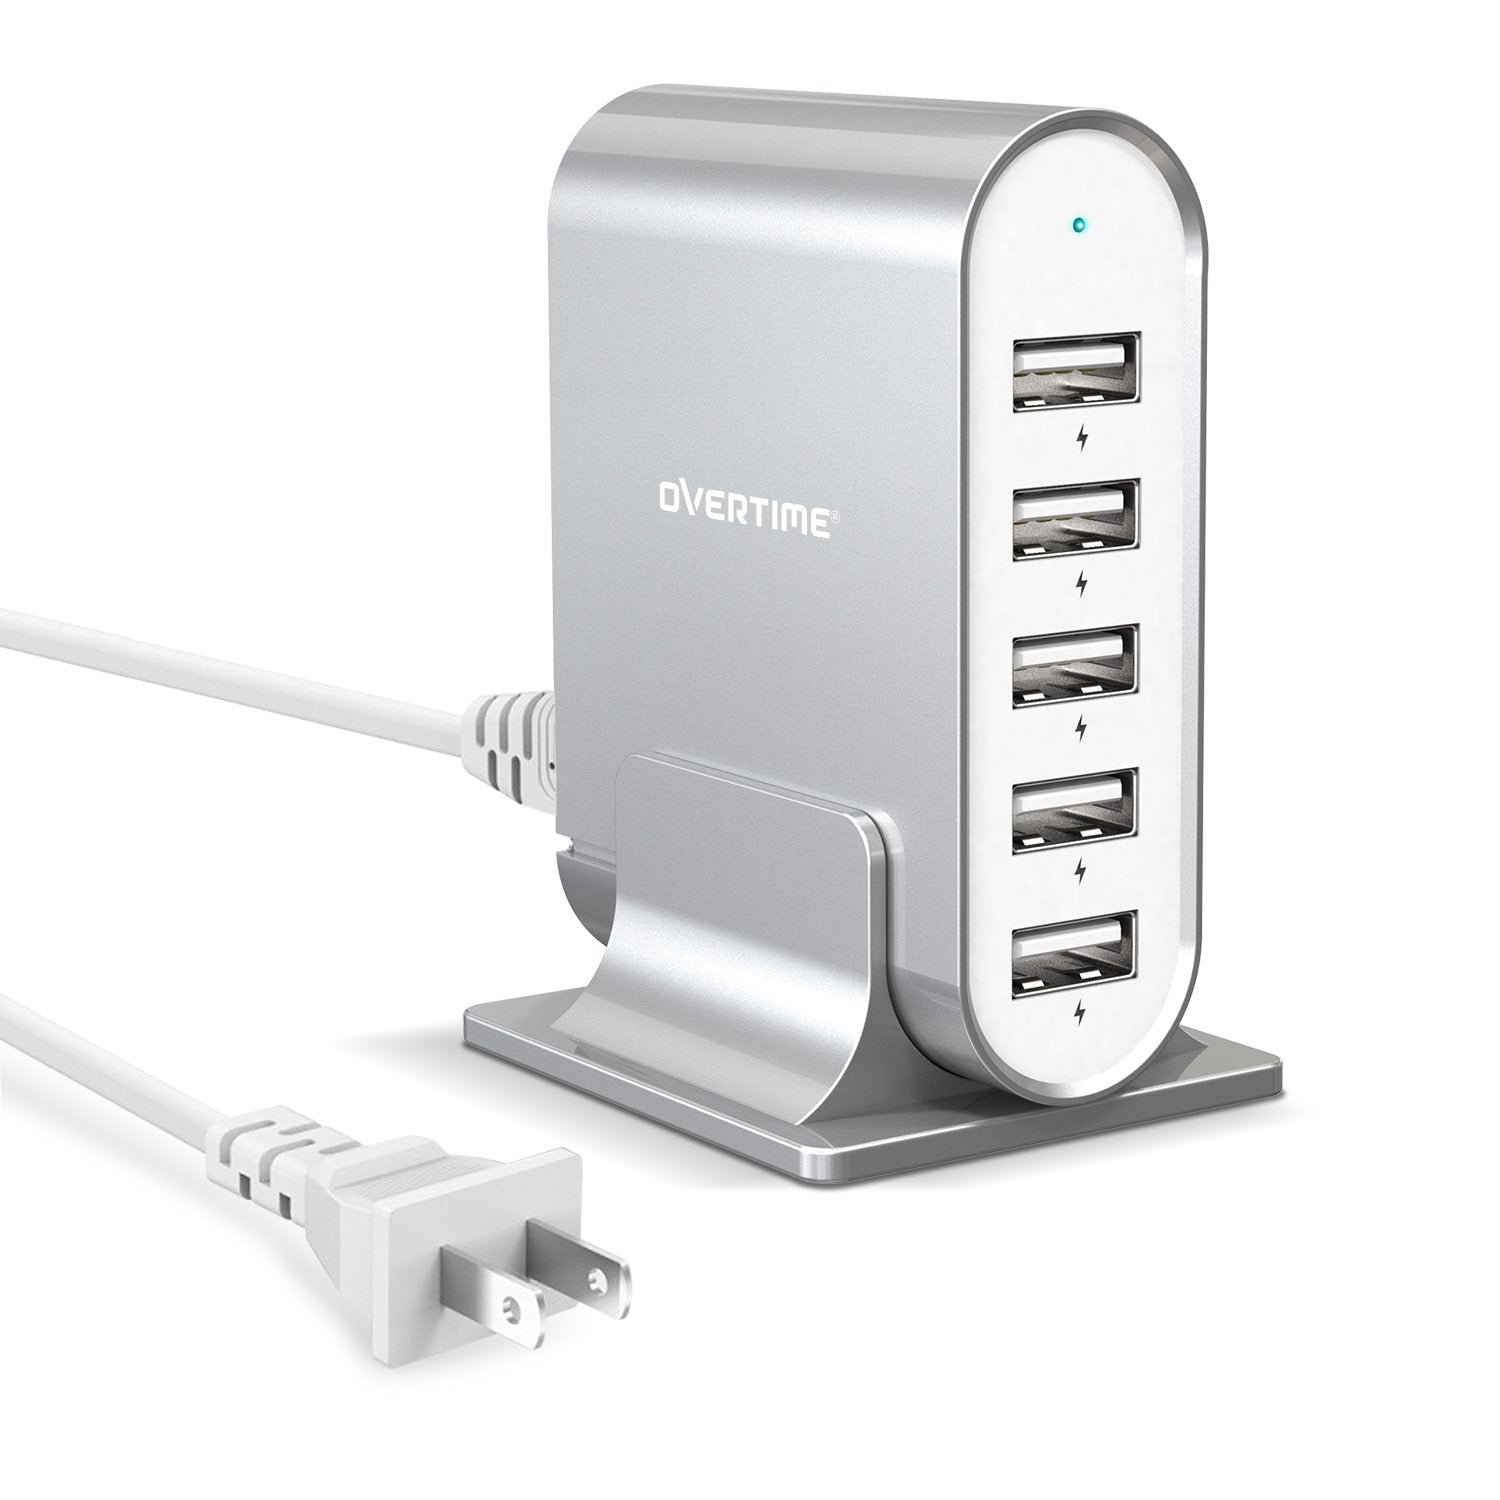 5-Port 35.5W/7.1A Desktop Charger